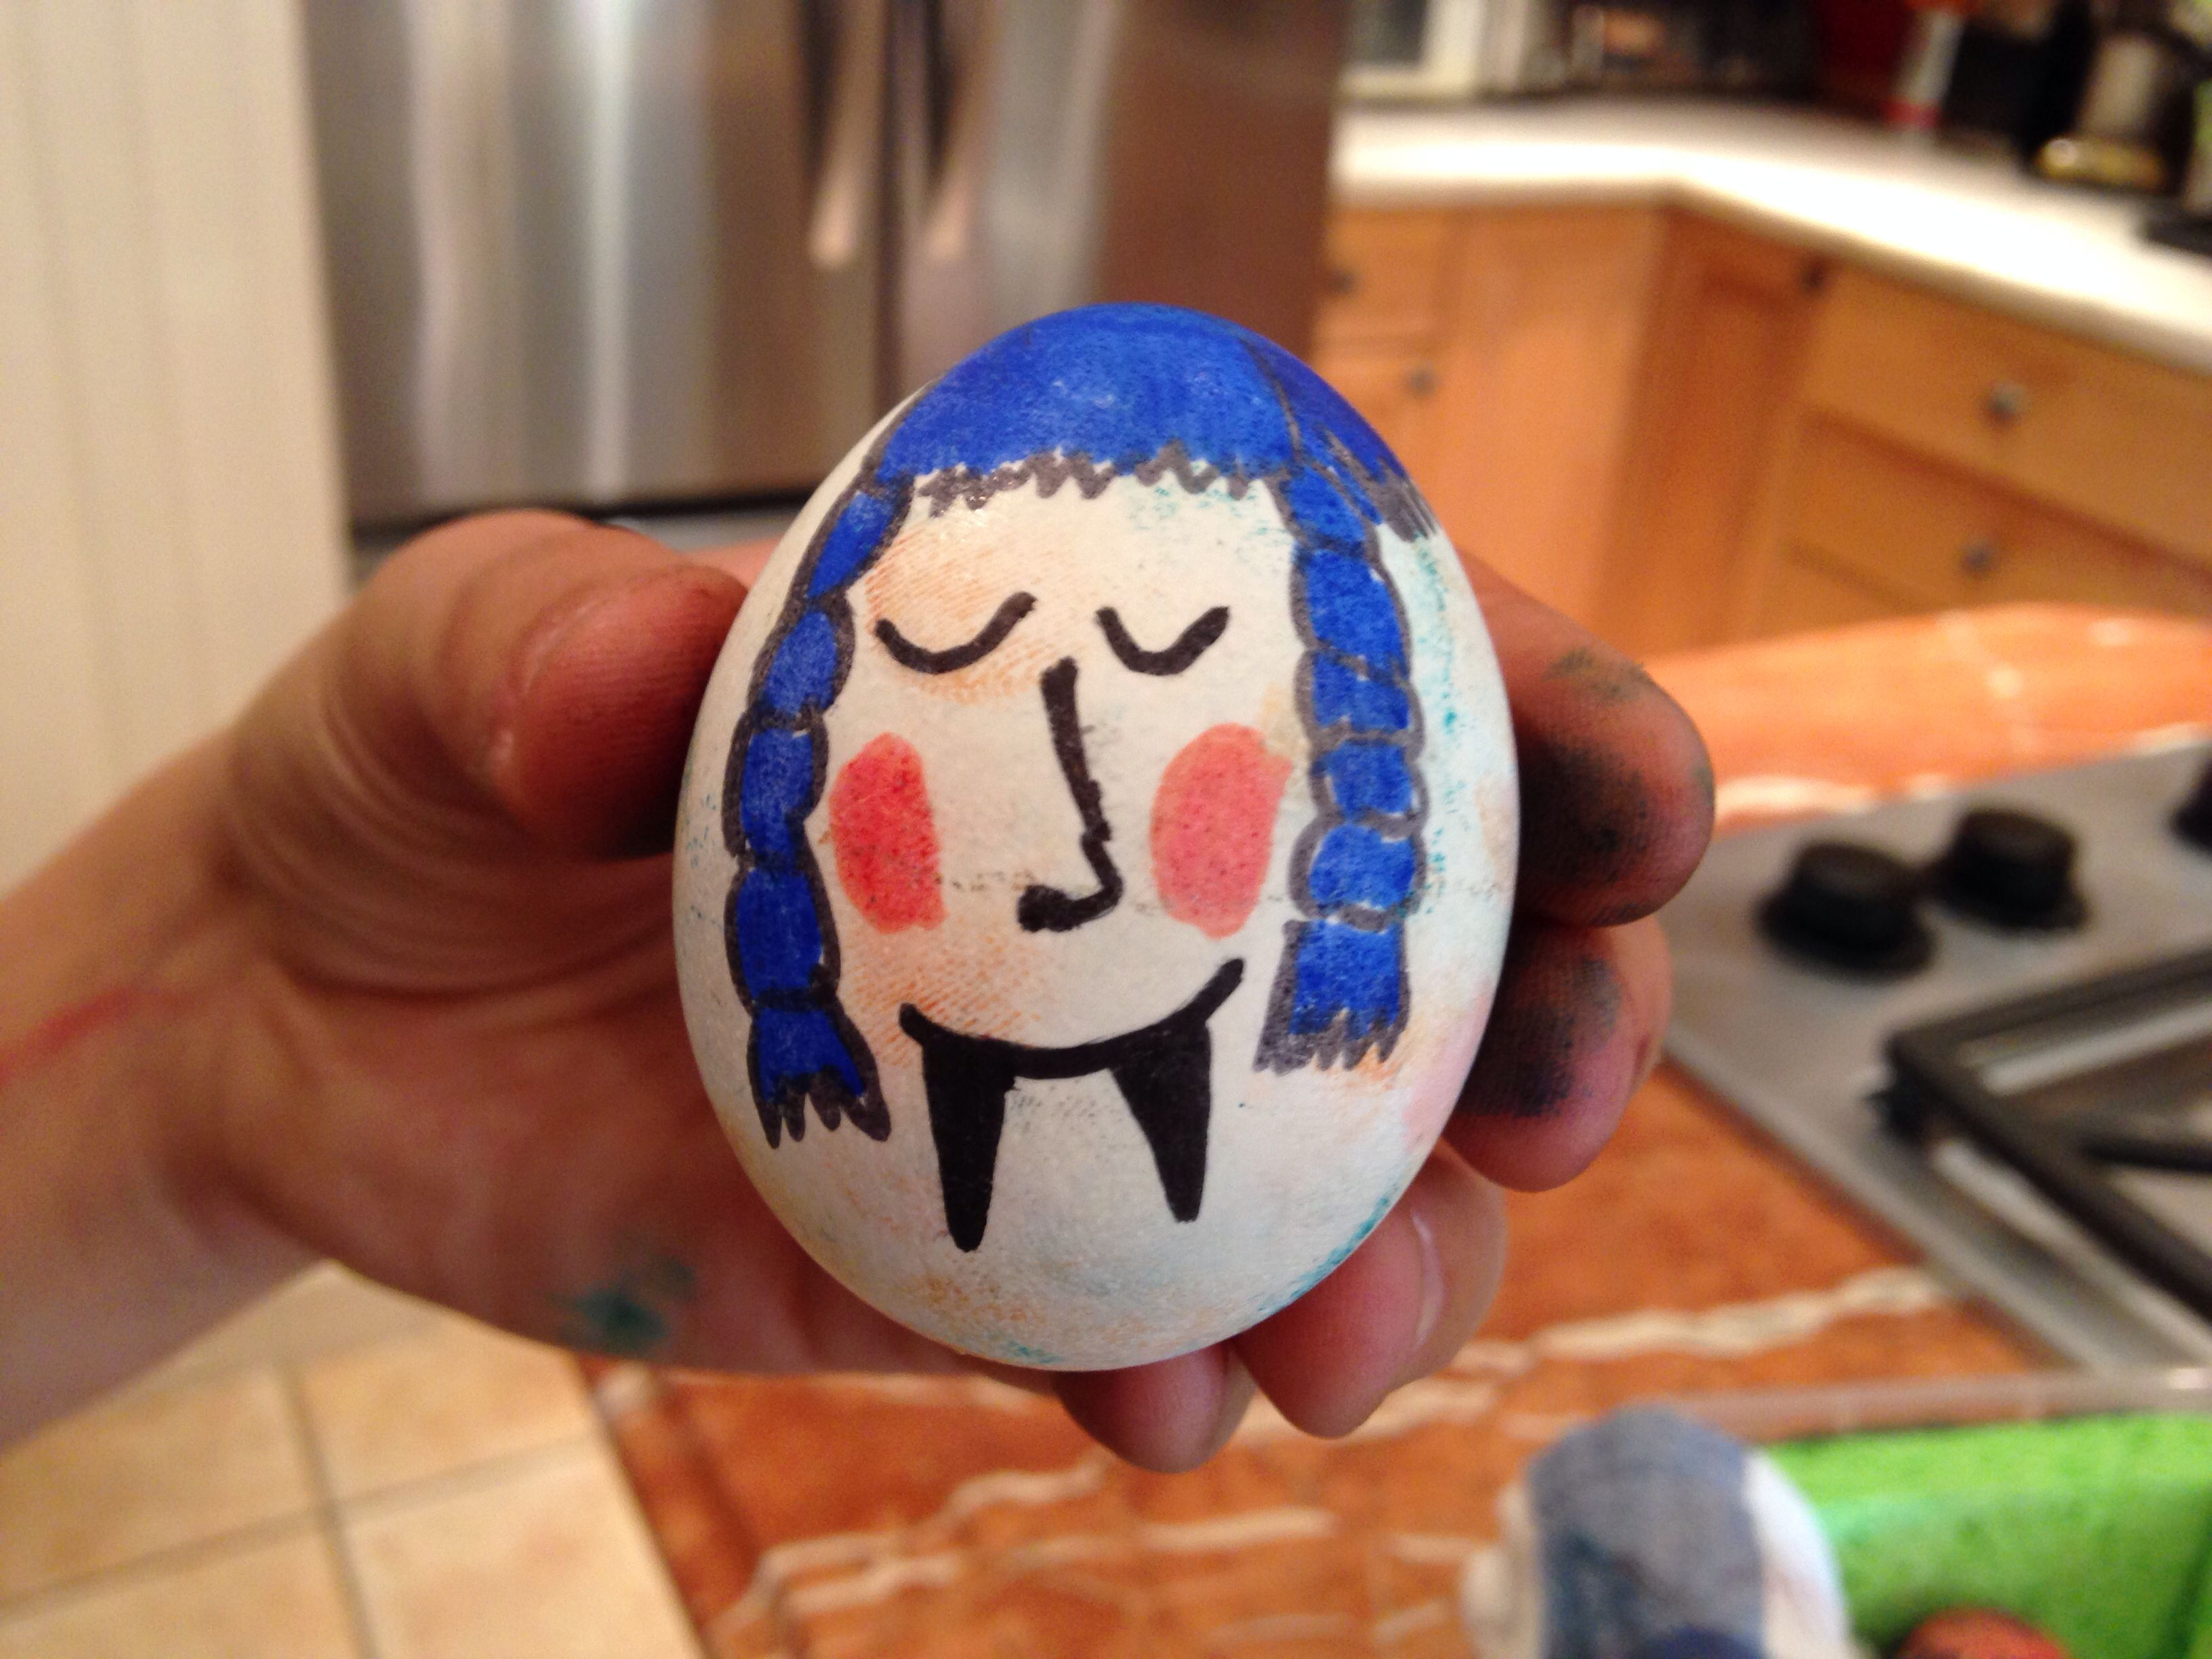 Egg baby project face  Back to school  Pinterest